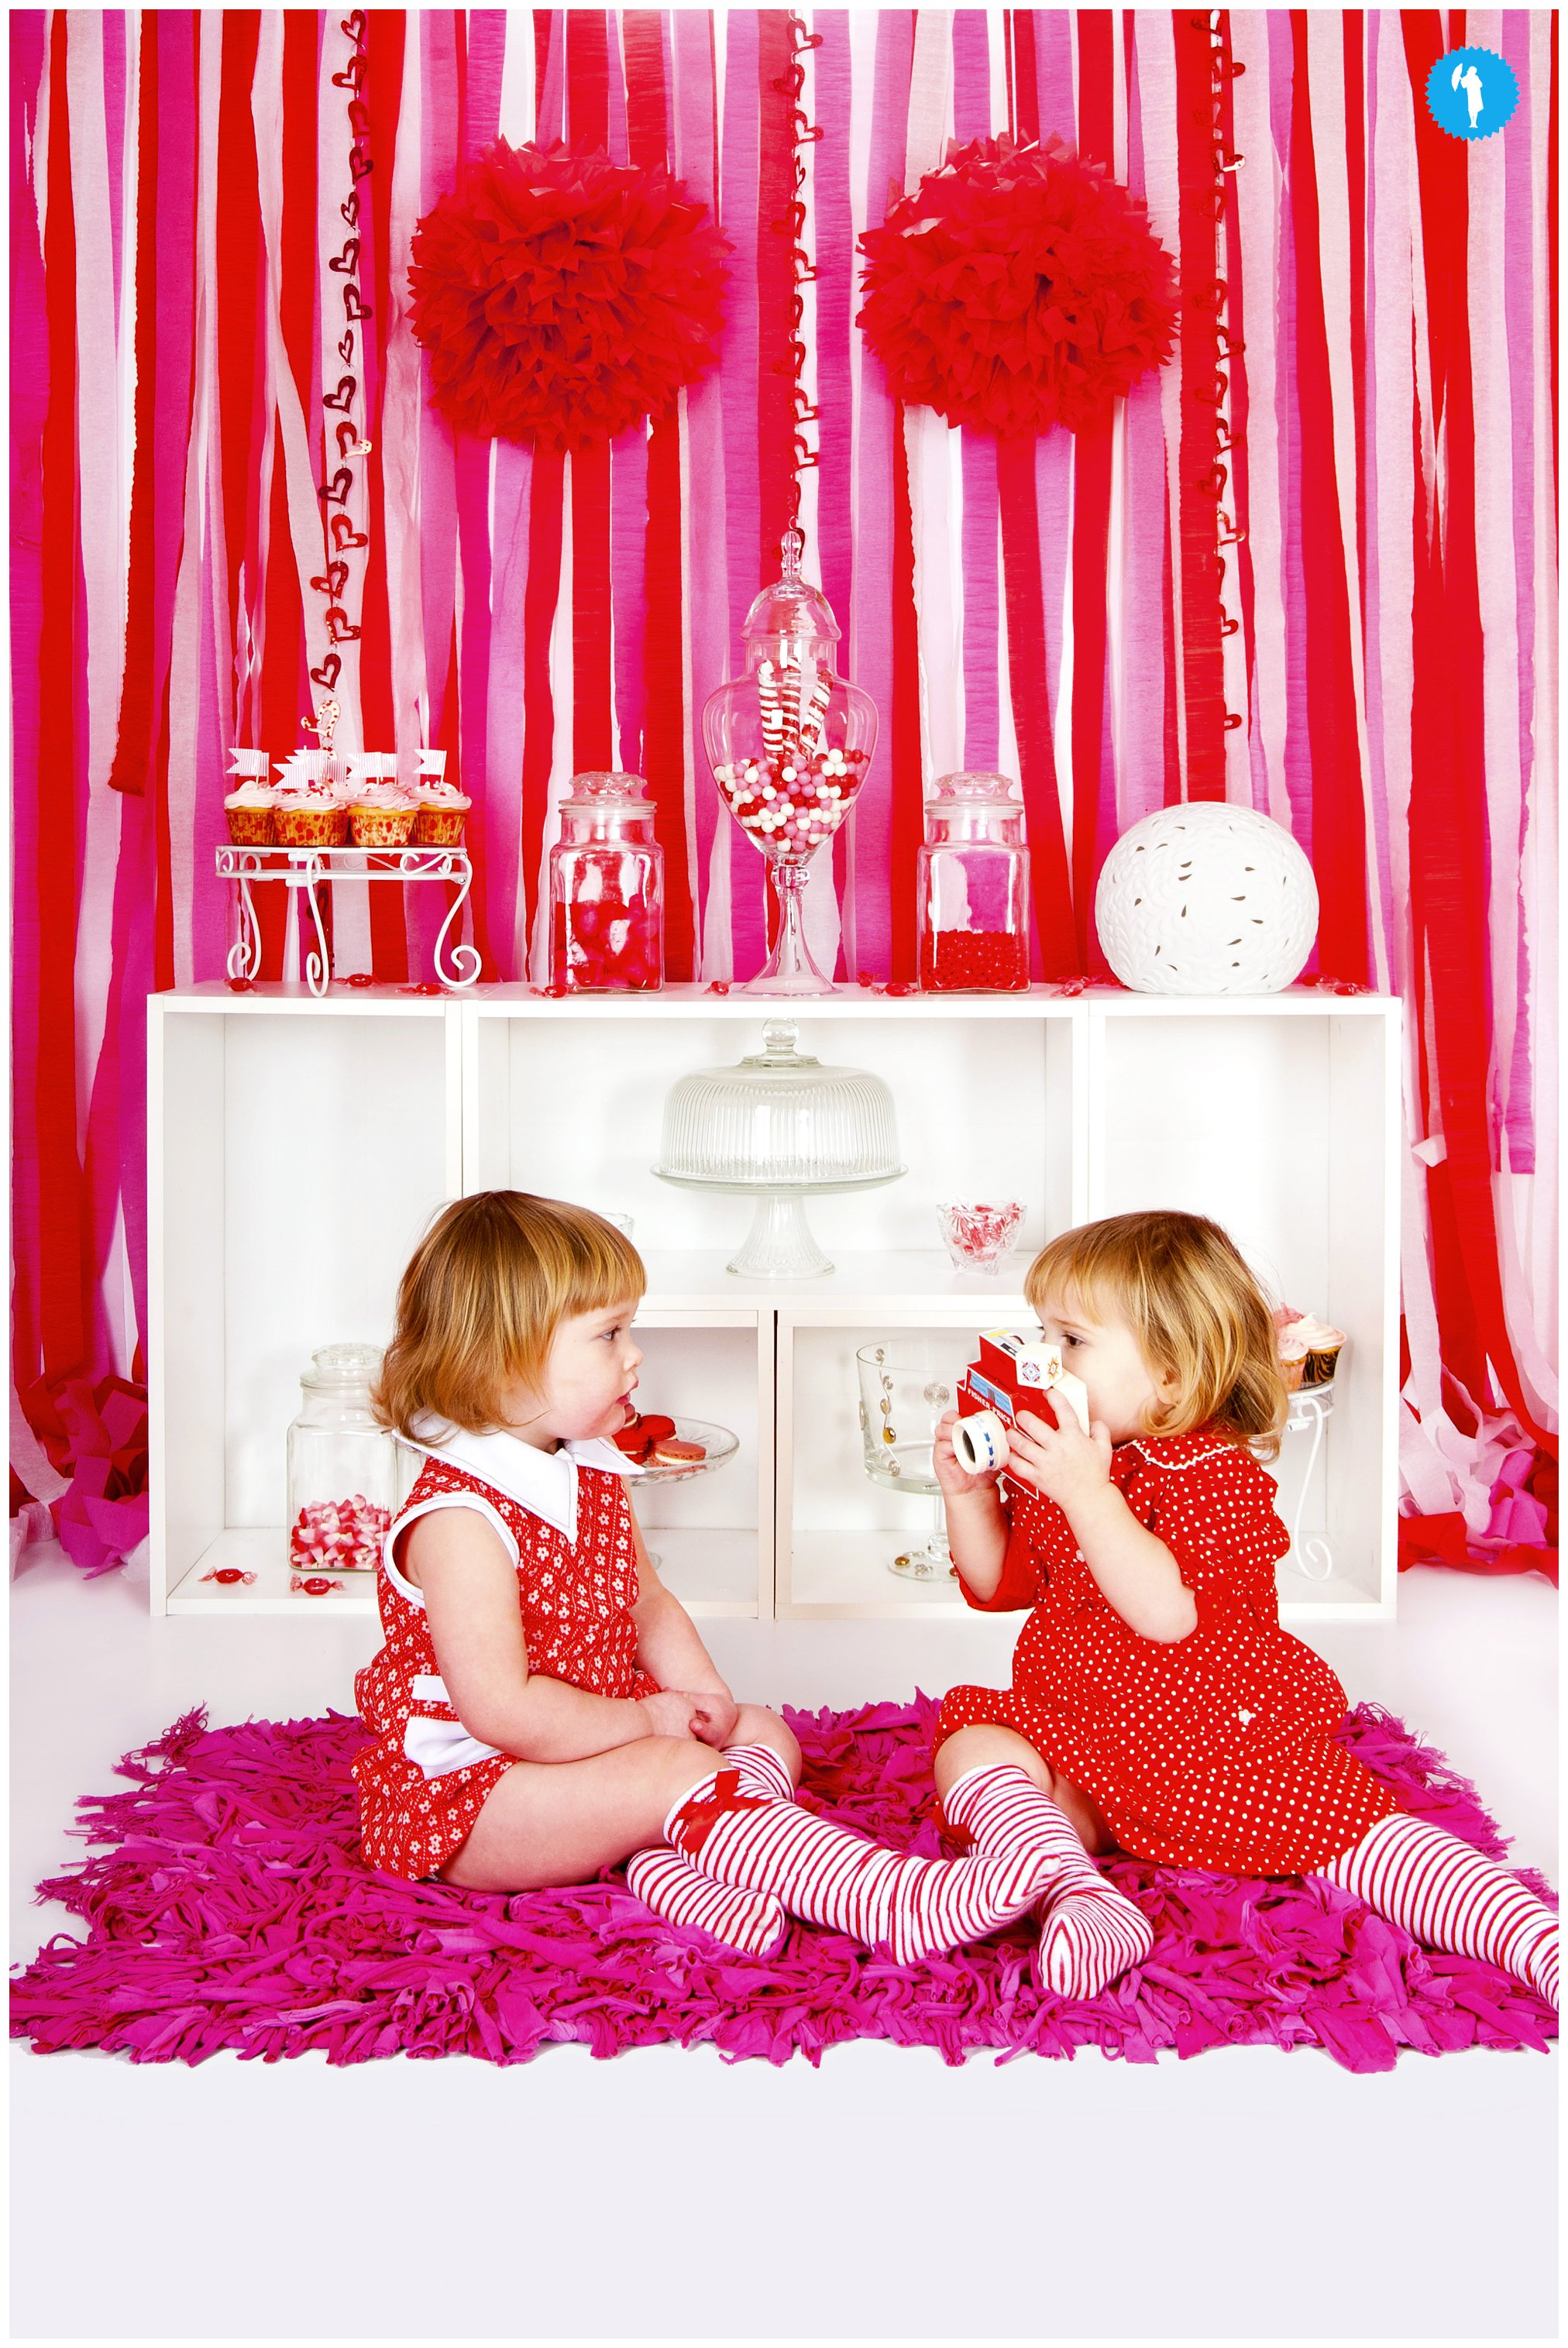 Twins with a camera, creative portrait by Emily Beatty.